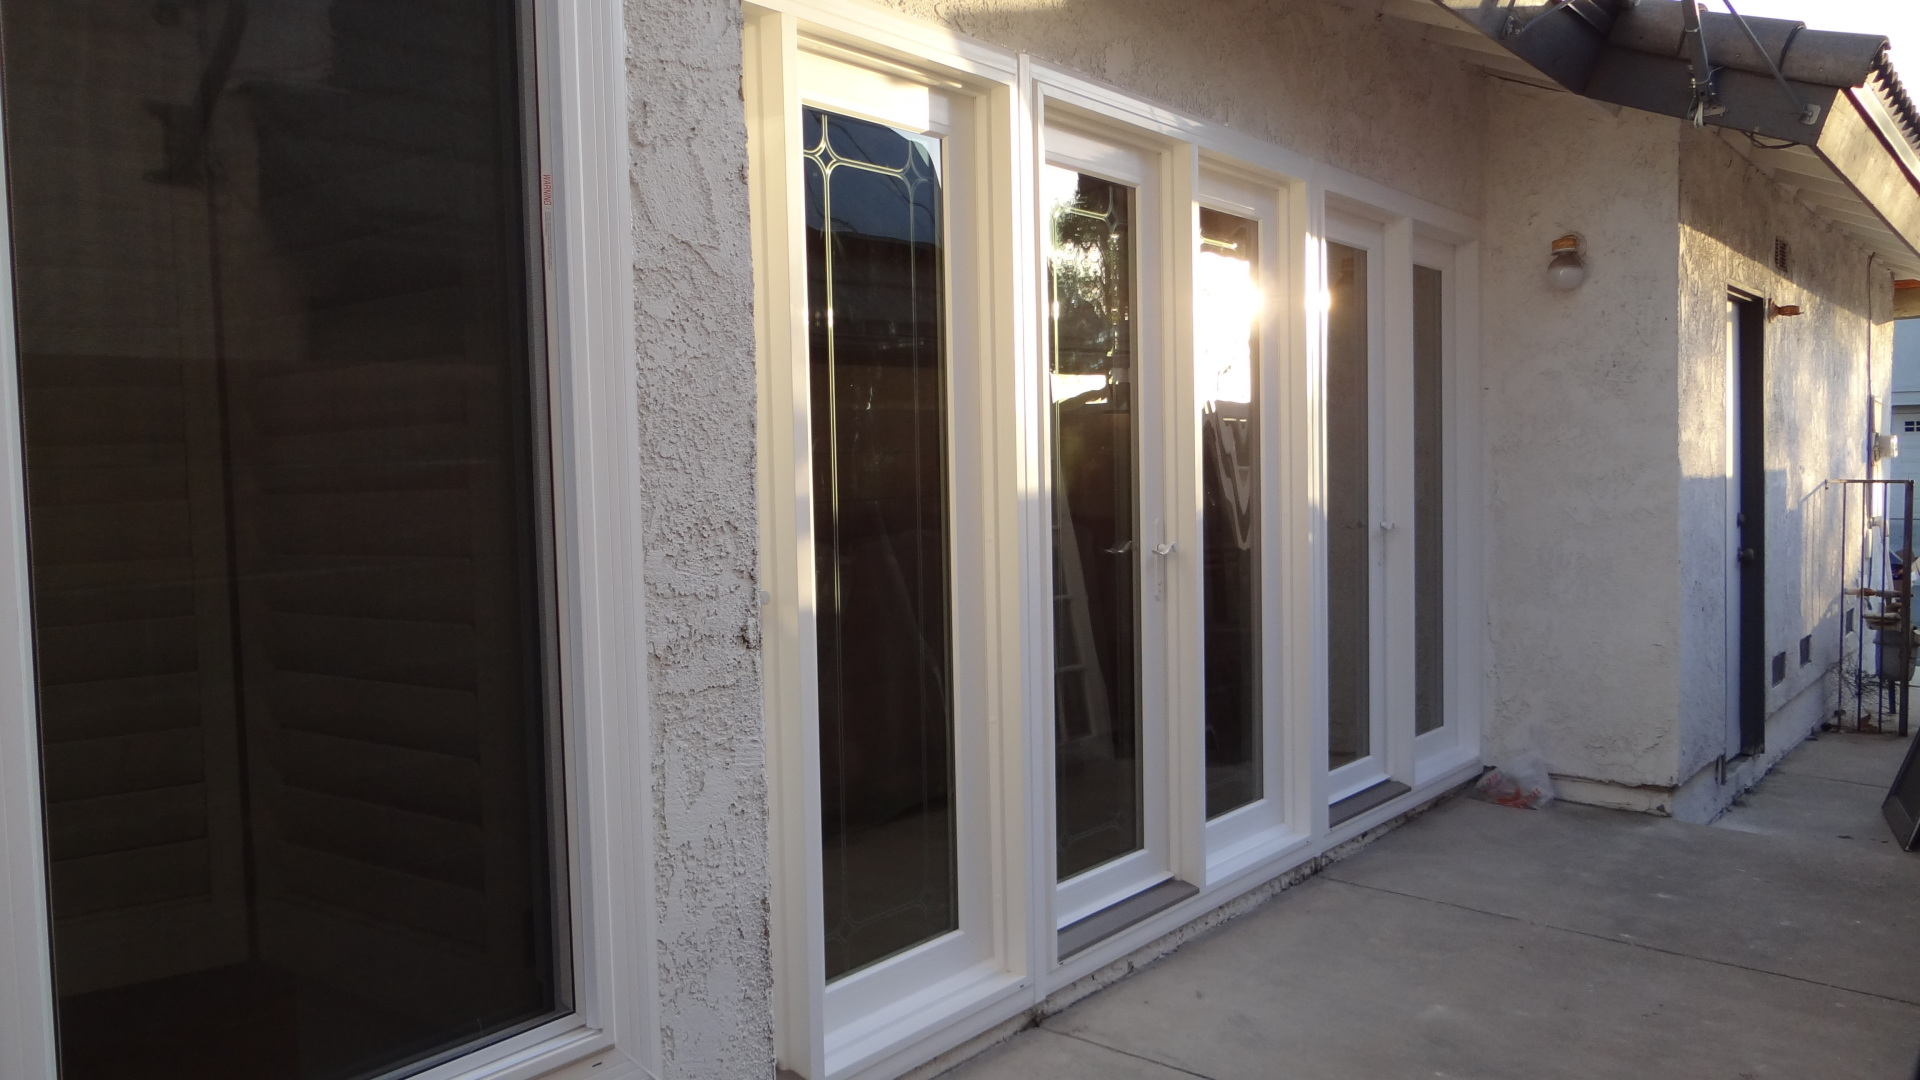 Windows and Doors After